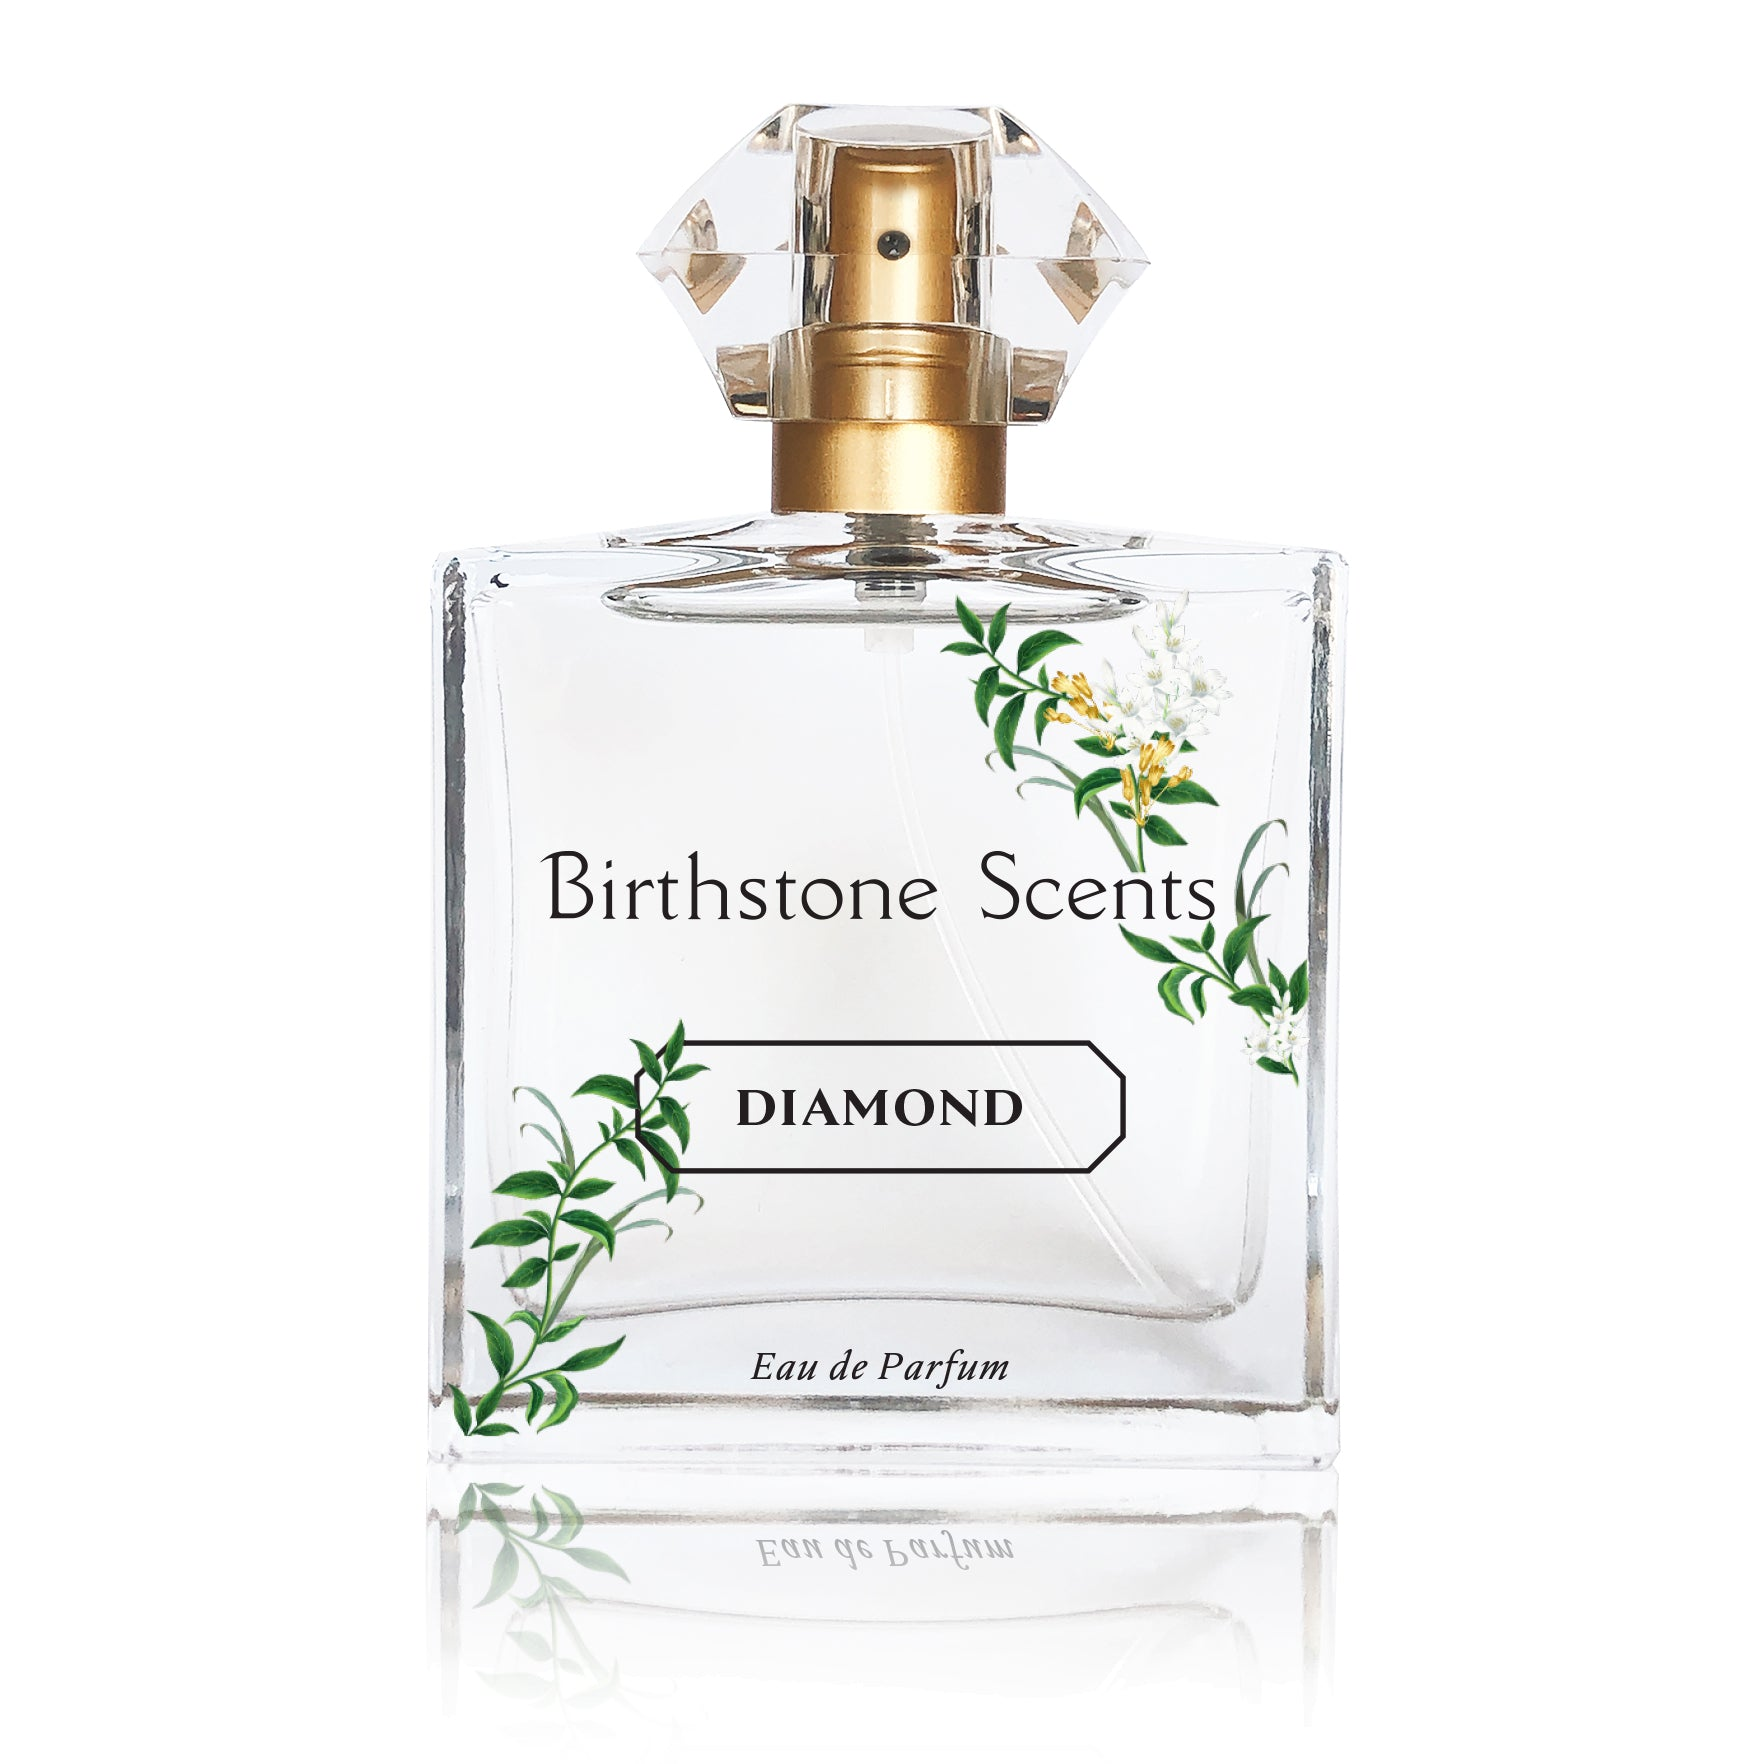 DIAMOND PERFUME | April - Birthstone Scents